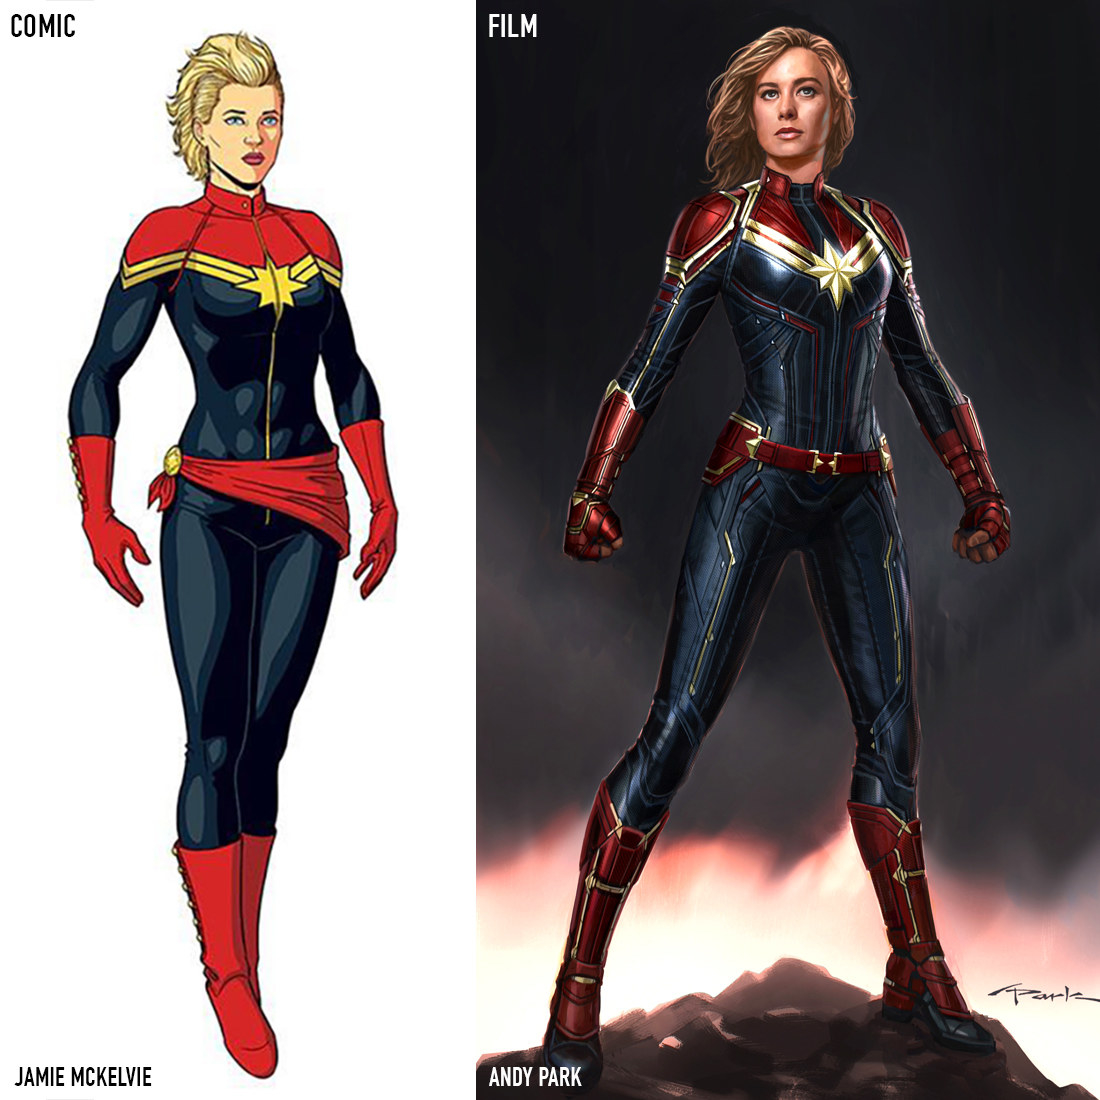 21 Secrets About The Captain Marvel Costumes That Will Make You Say Wait That S Really Cool Captain marvel girls short sleeve costume dress & headband superhero cosplay. captain marvel costumes